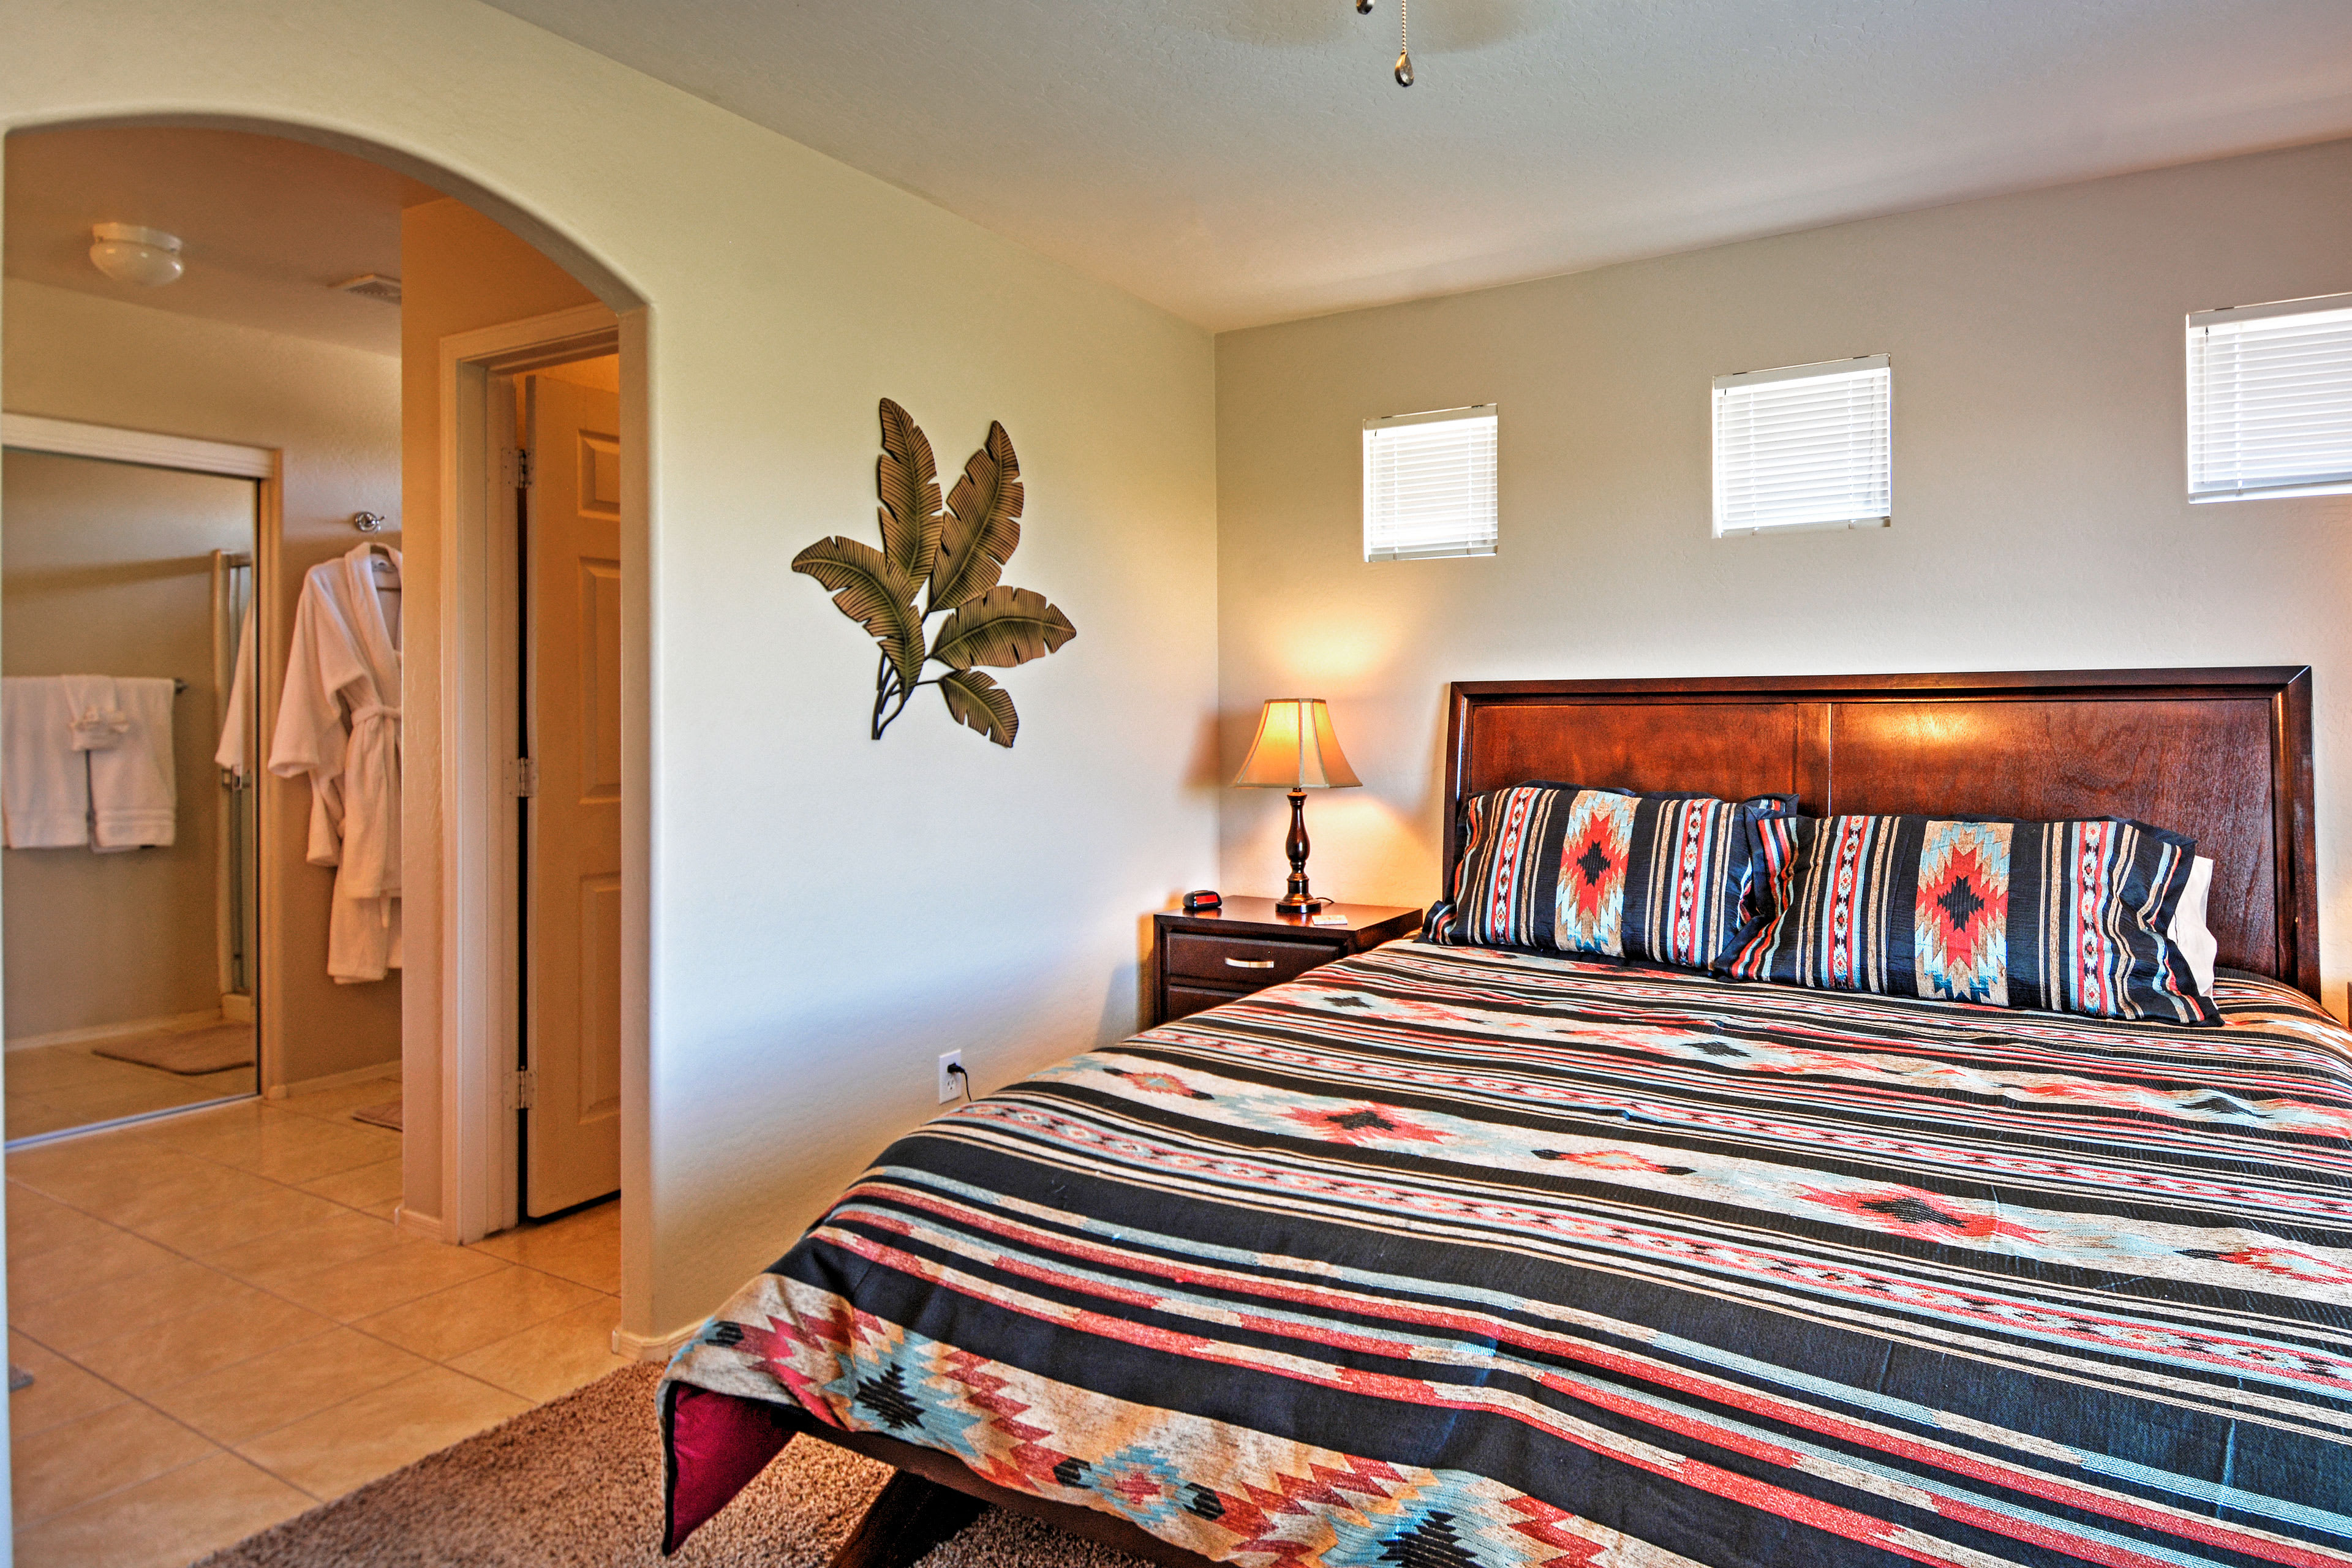 Sleep in peace in the comfort of the king bed in the master bedroom.